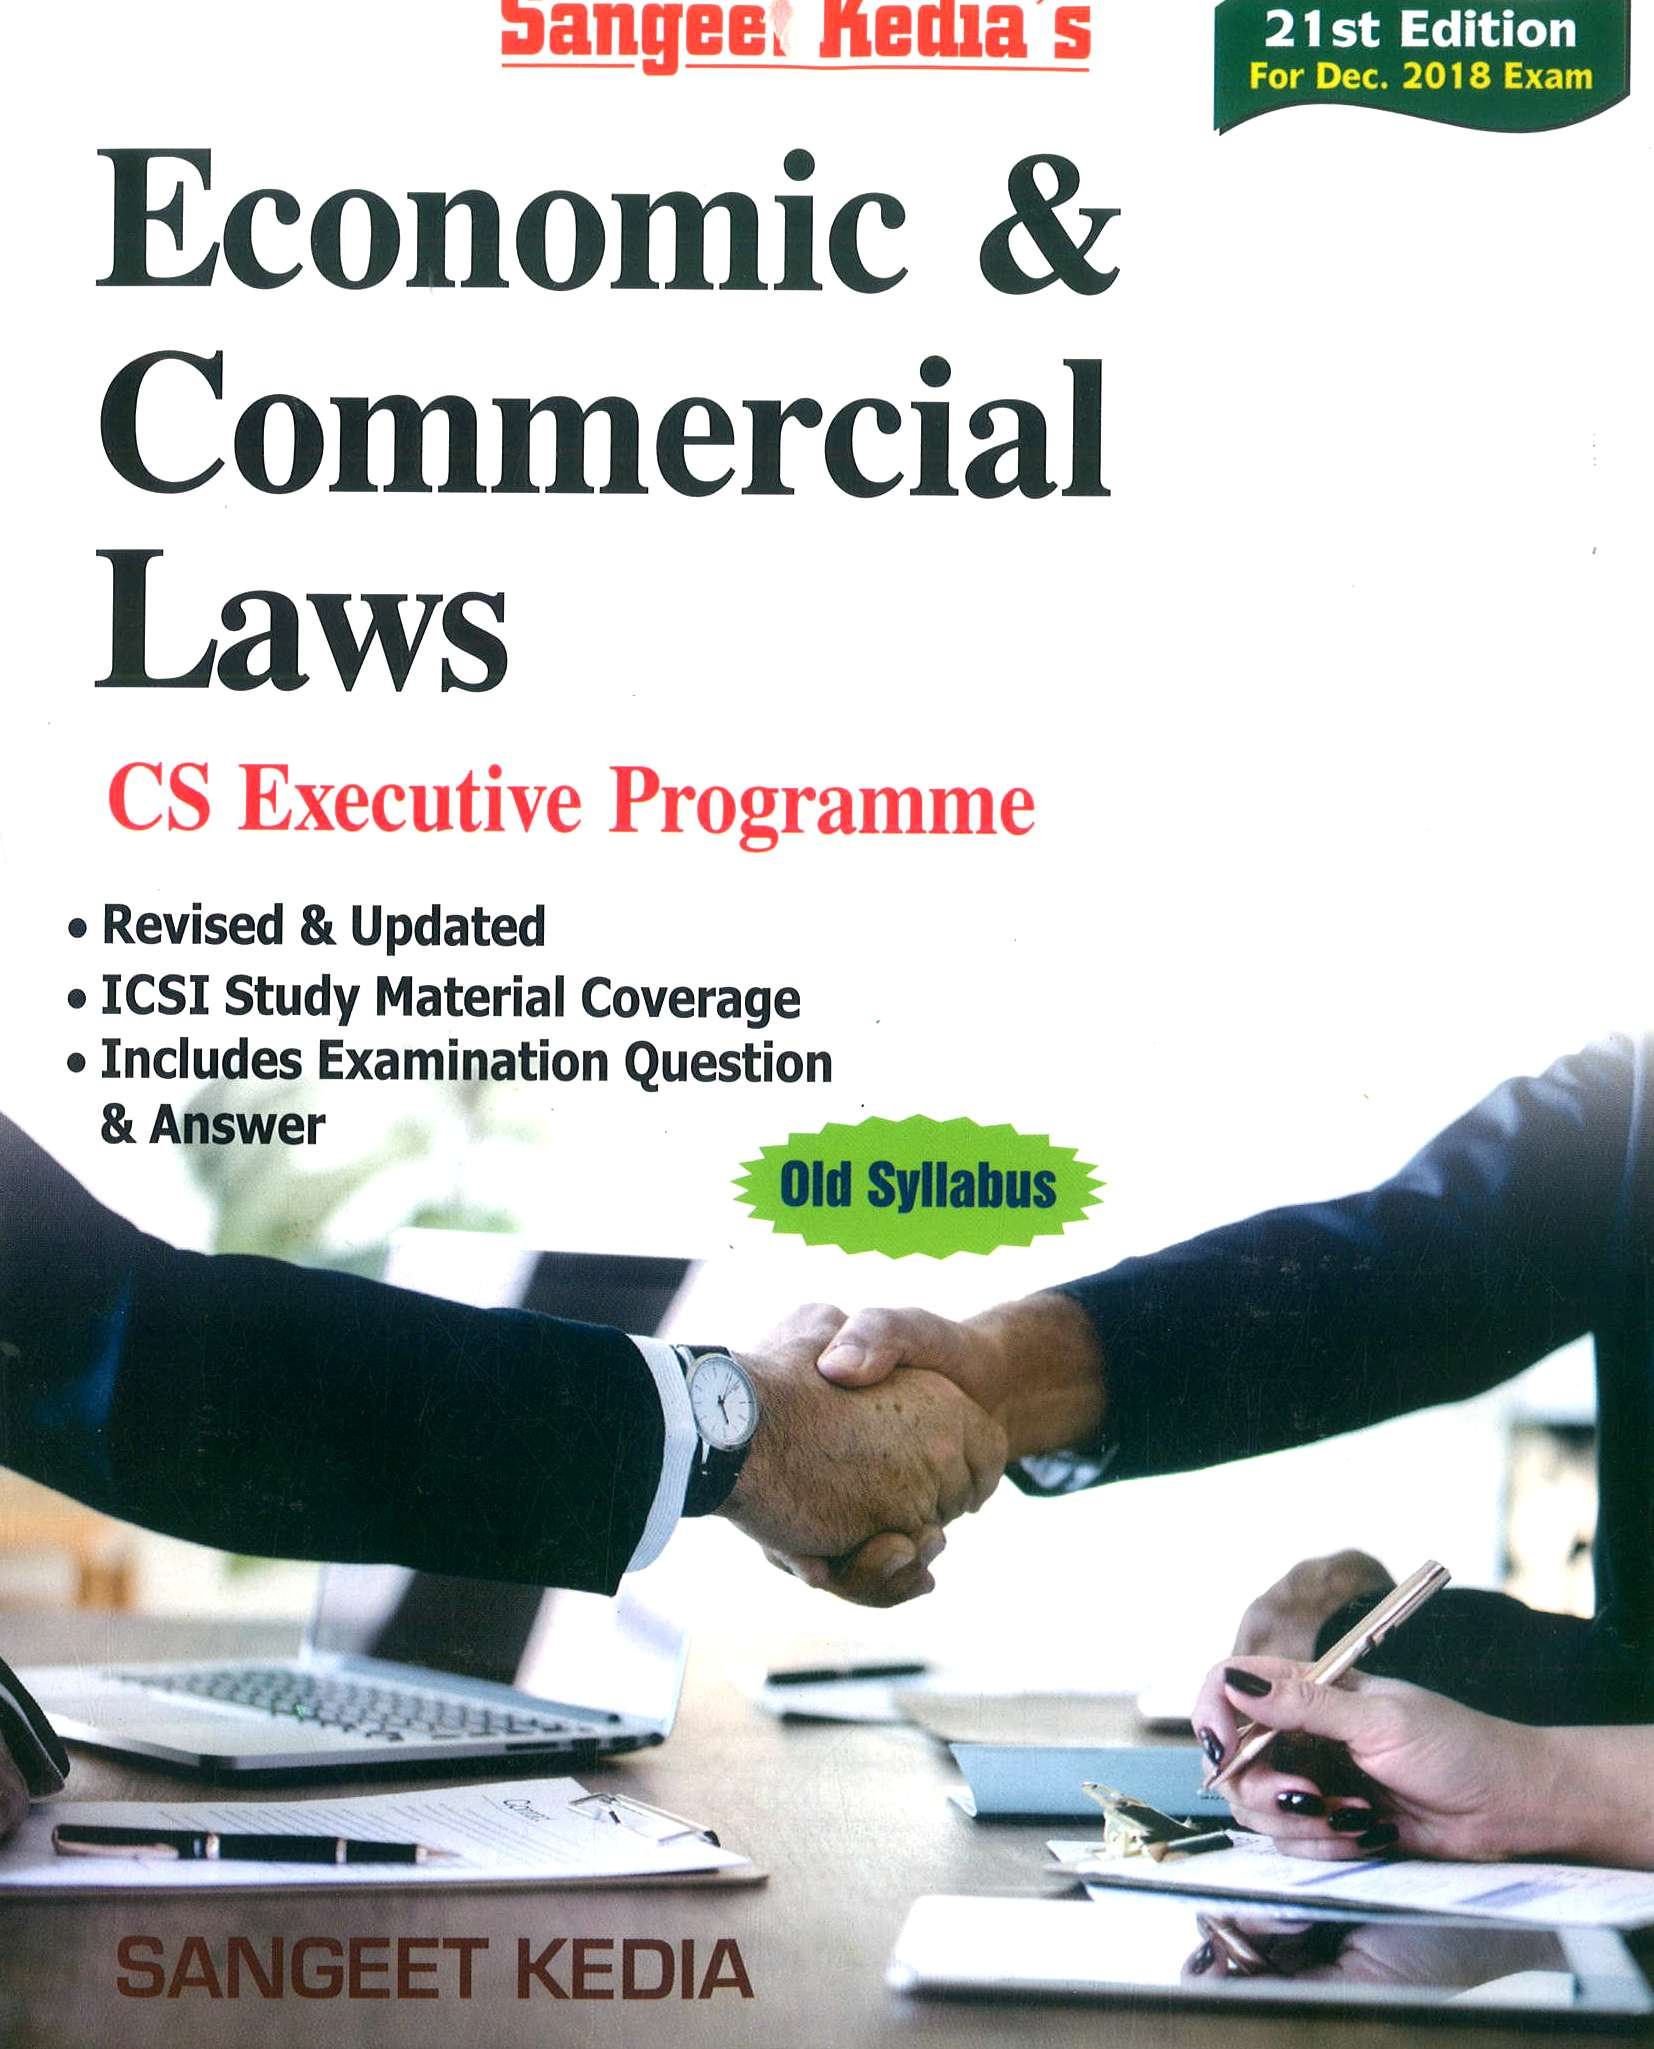 Pooja Law House CS Executive Economic & Commercial Laws (New Syllabus) by Sangeet Kedia Applicable for Dec 2018 Exam (Pooja Law House Publishing) Edition 21th, 2018